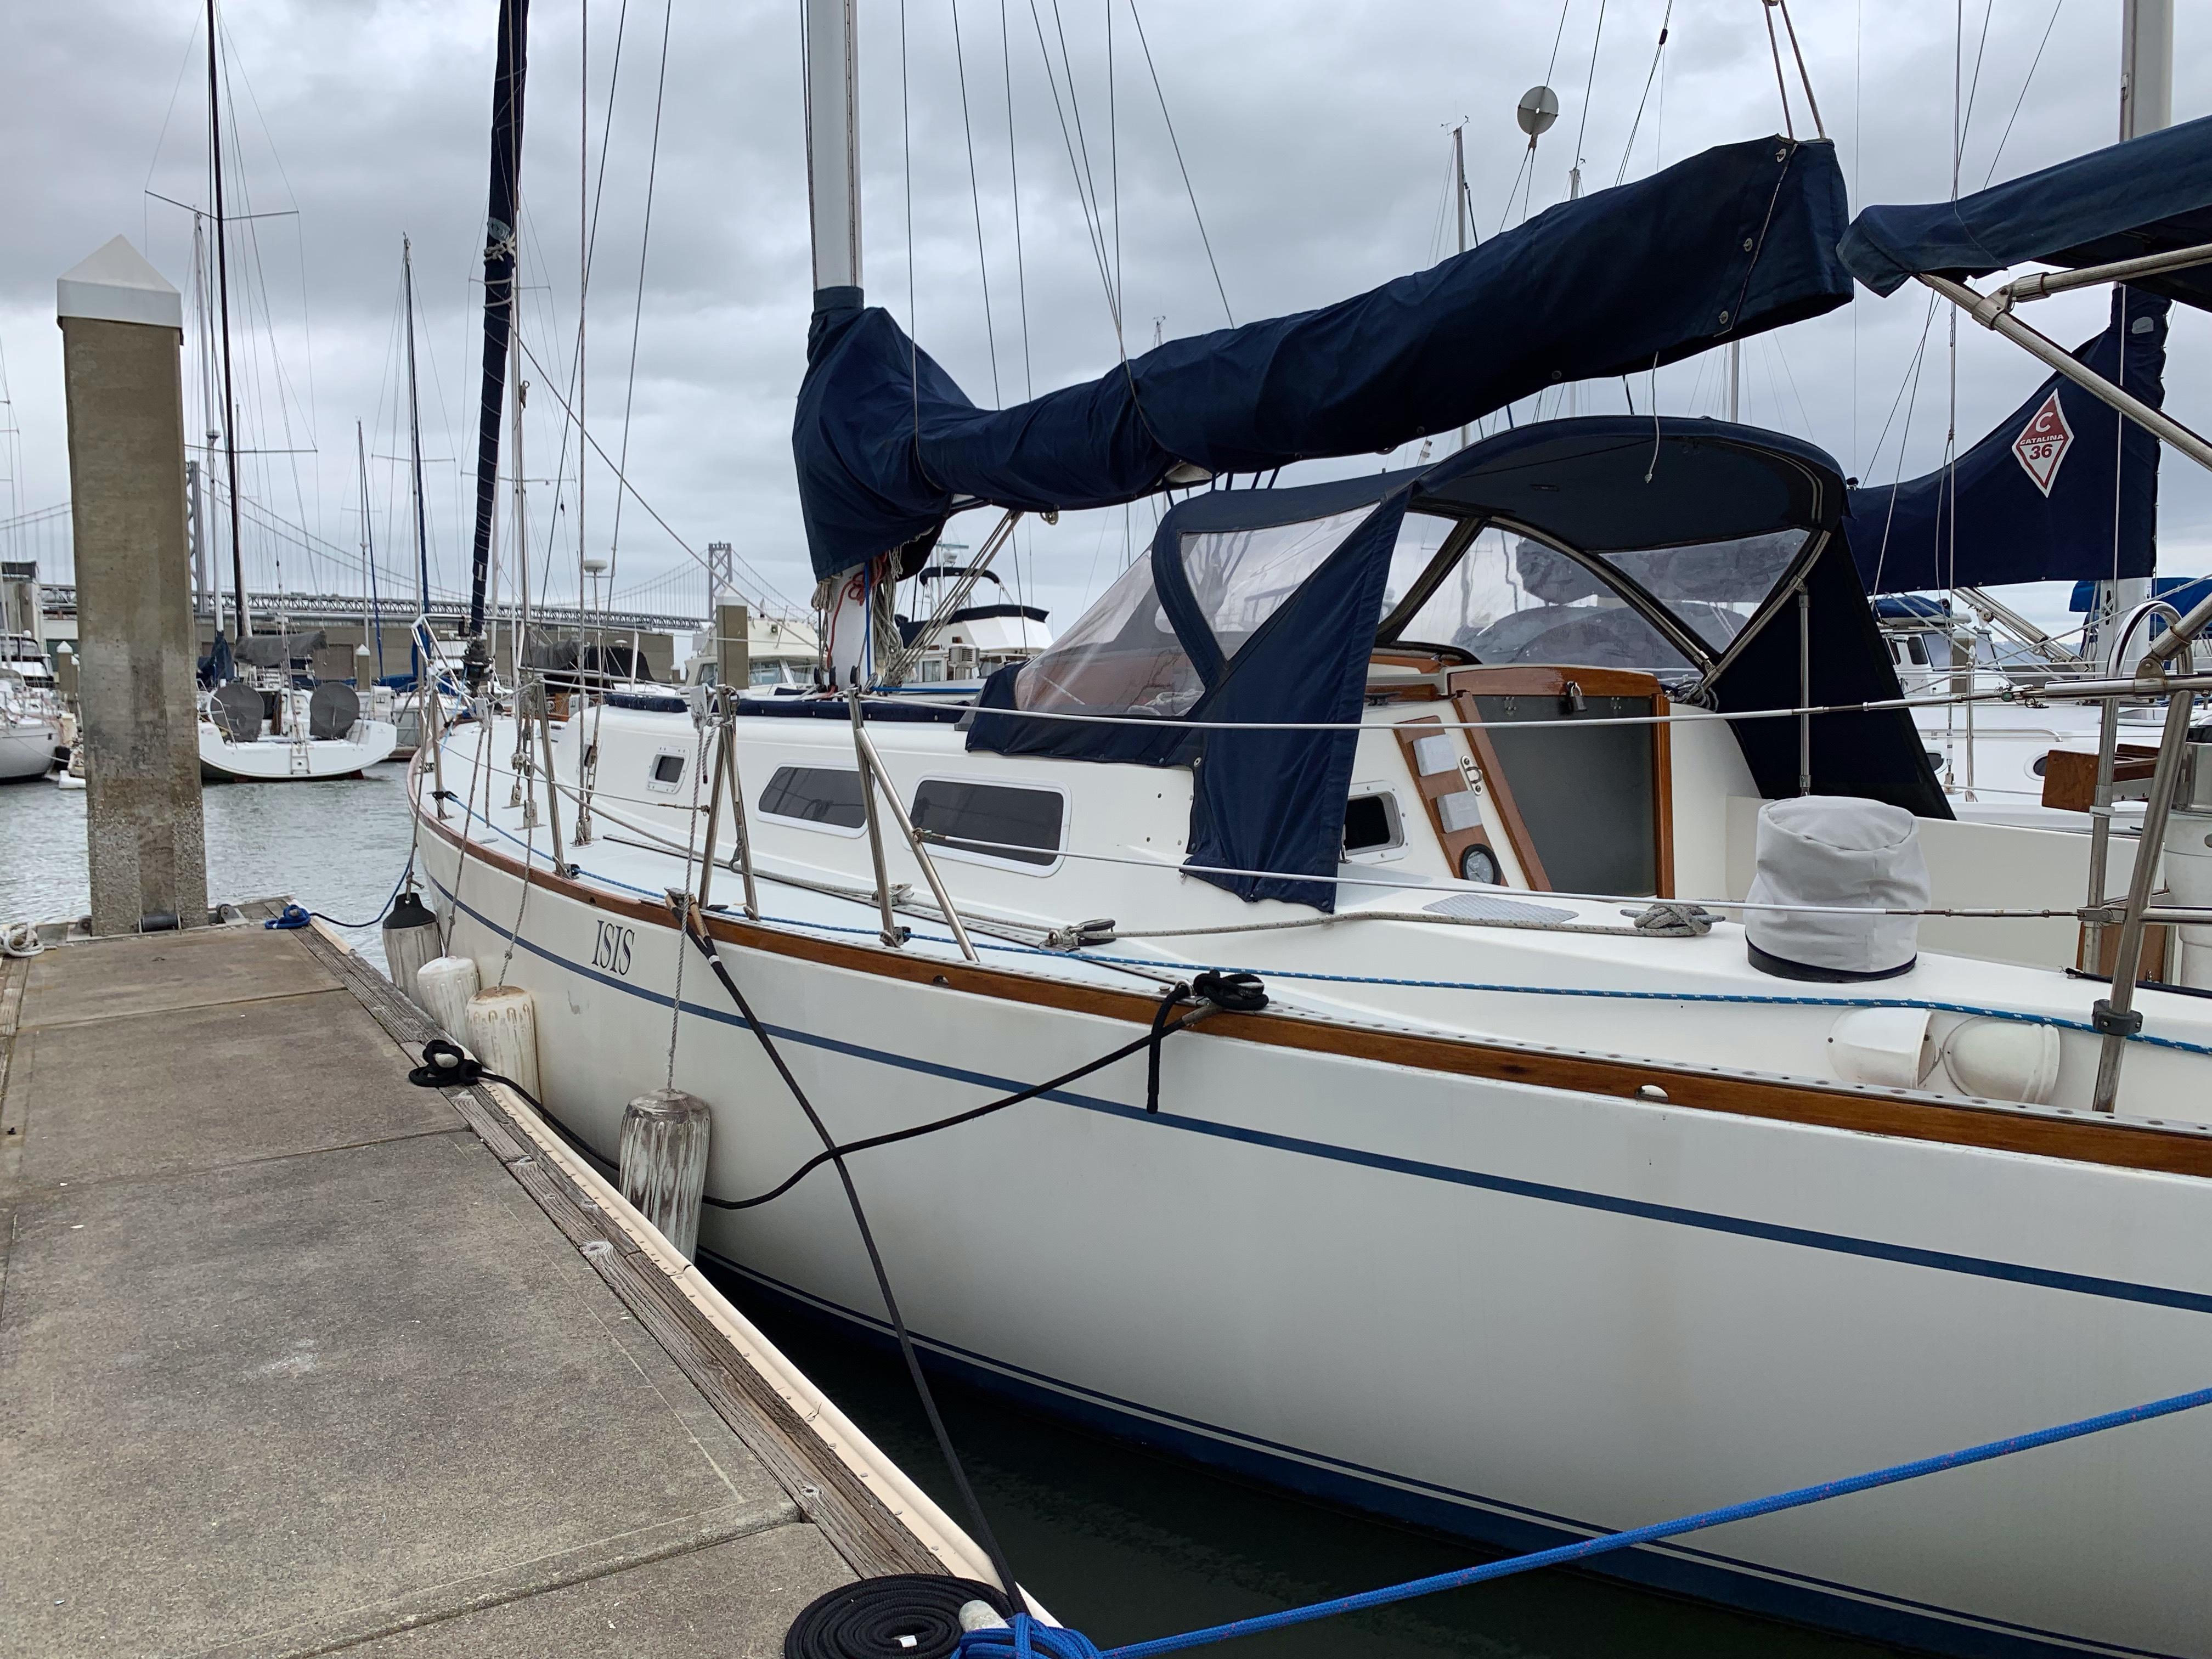 39' CAL 39 Yacht For Sale - Rubicon Yachts